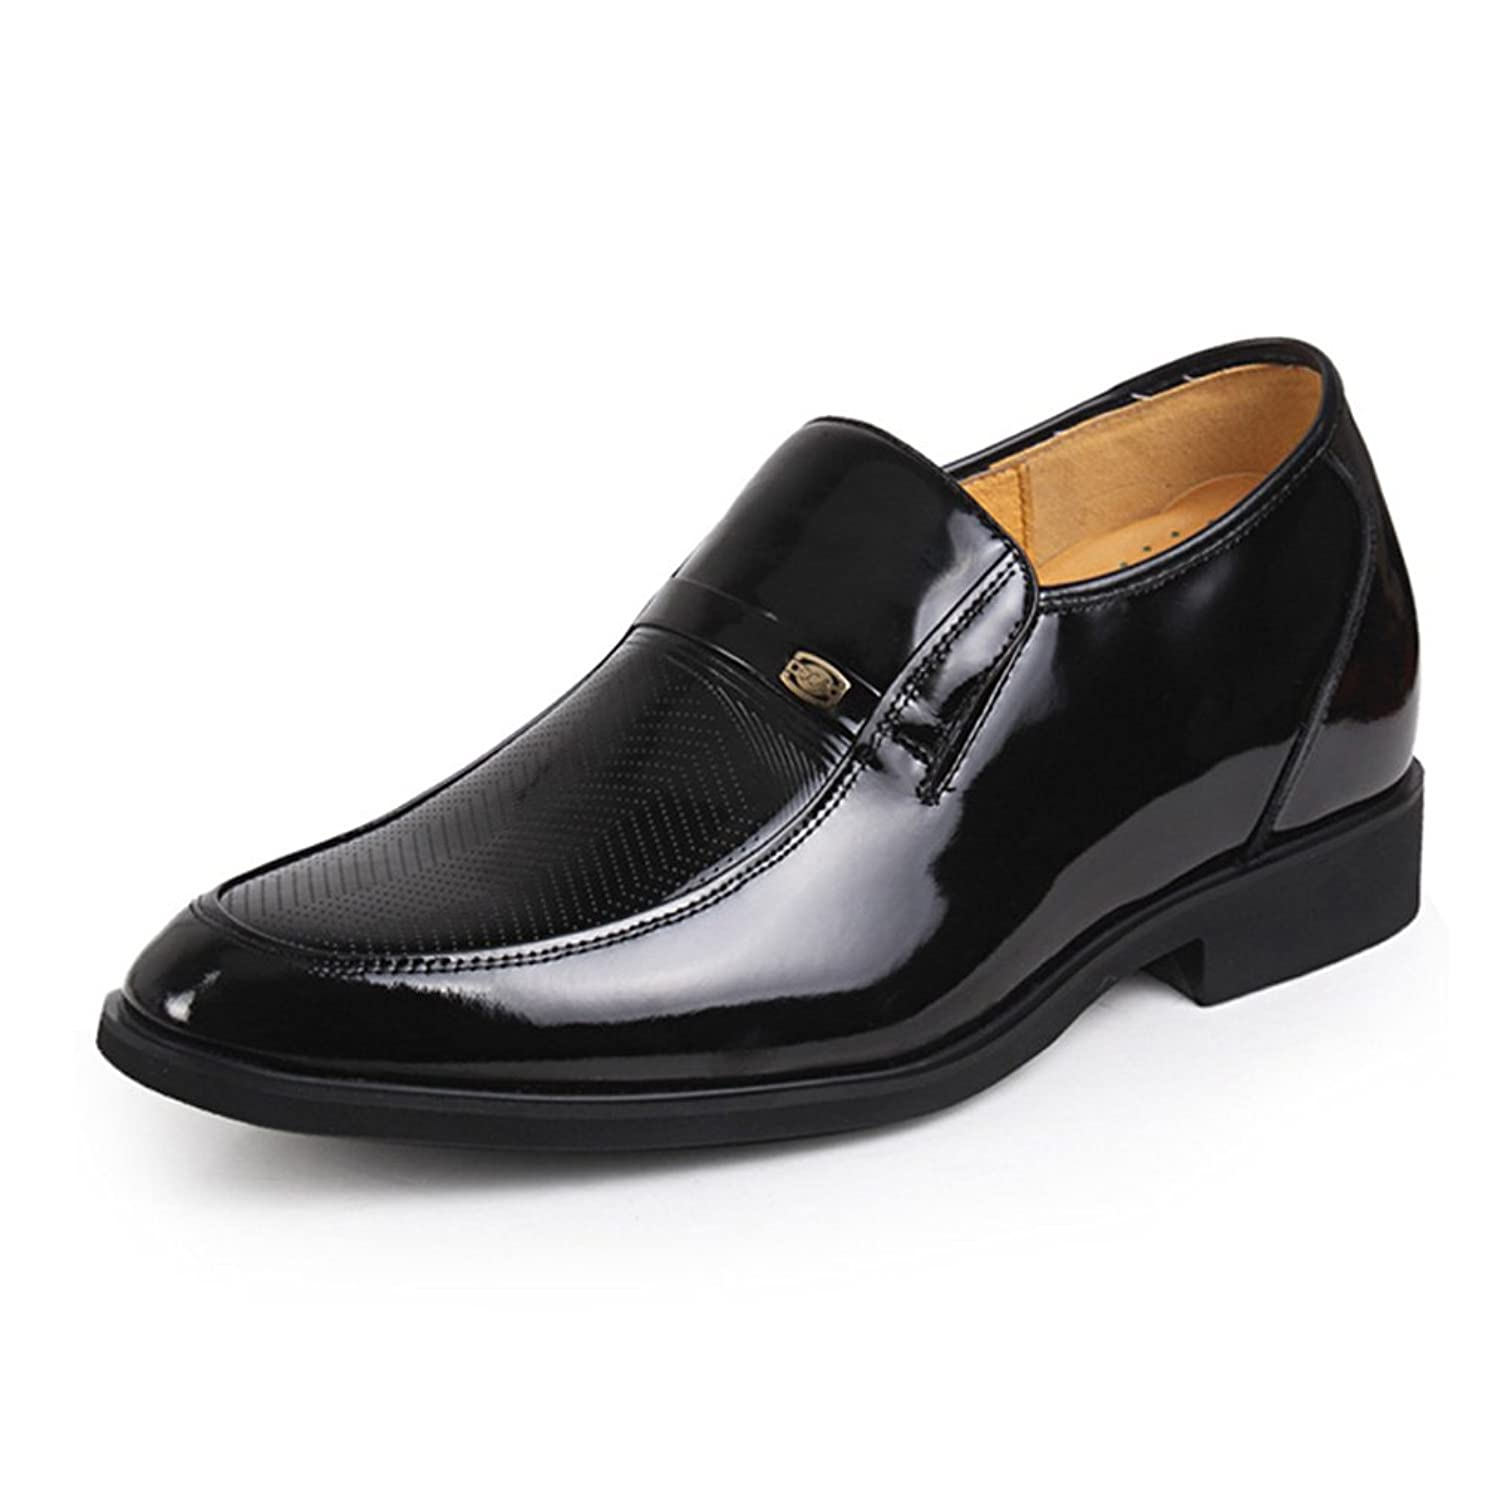 2.56 Inches Taller - Height Increasing Elevator Shoes (Black Leather Slip-on point-toe)